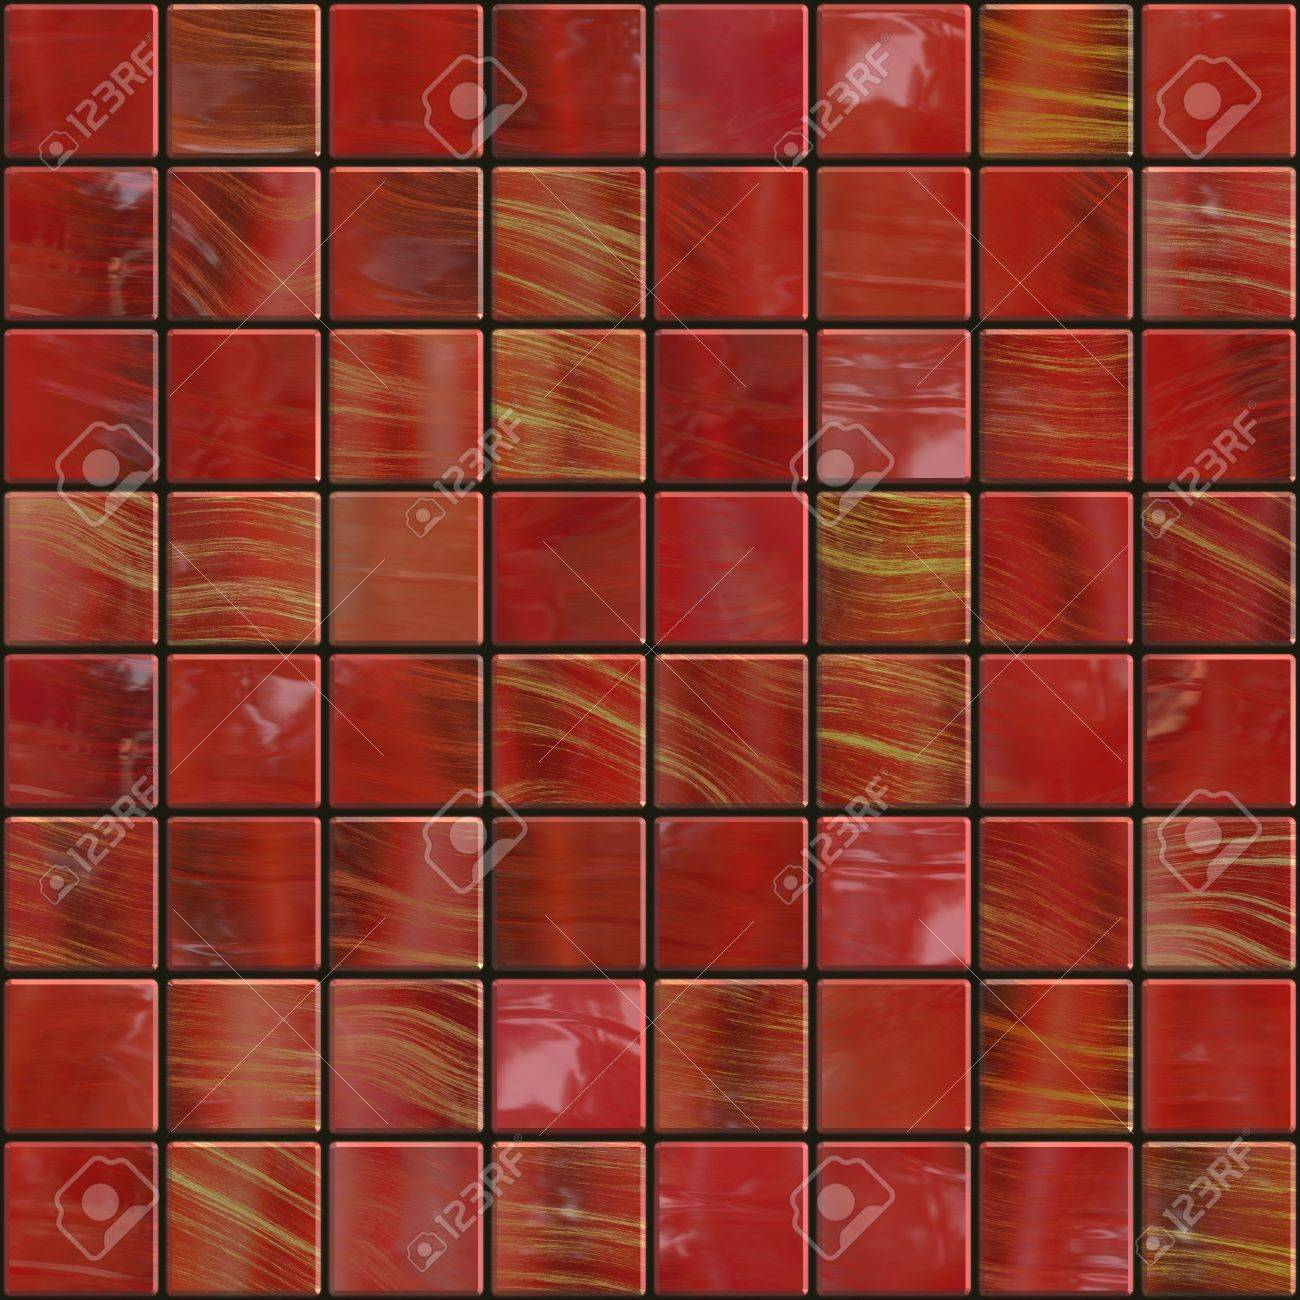 Red Ceramic Tiles With Golden Sparkles Will Tile Seamless As